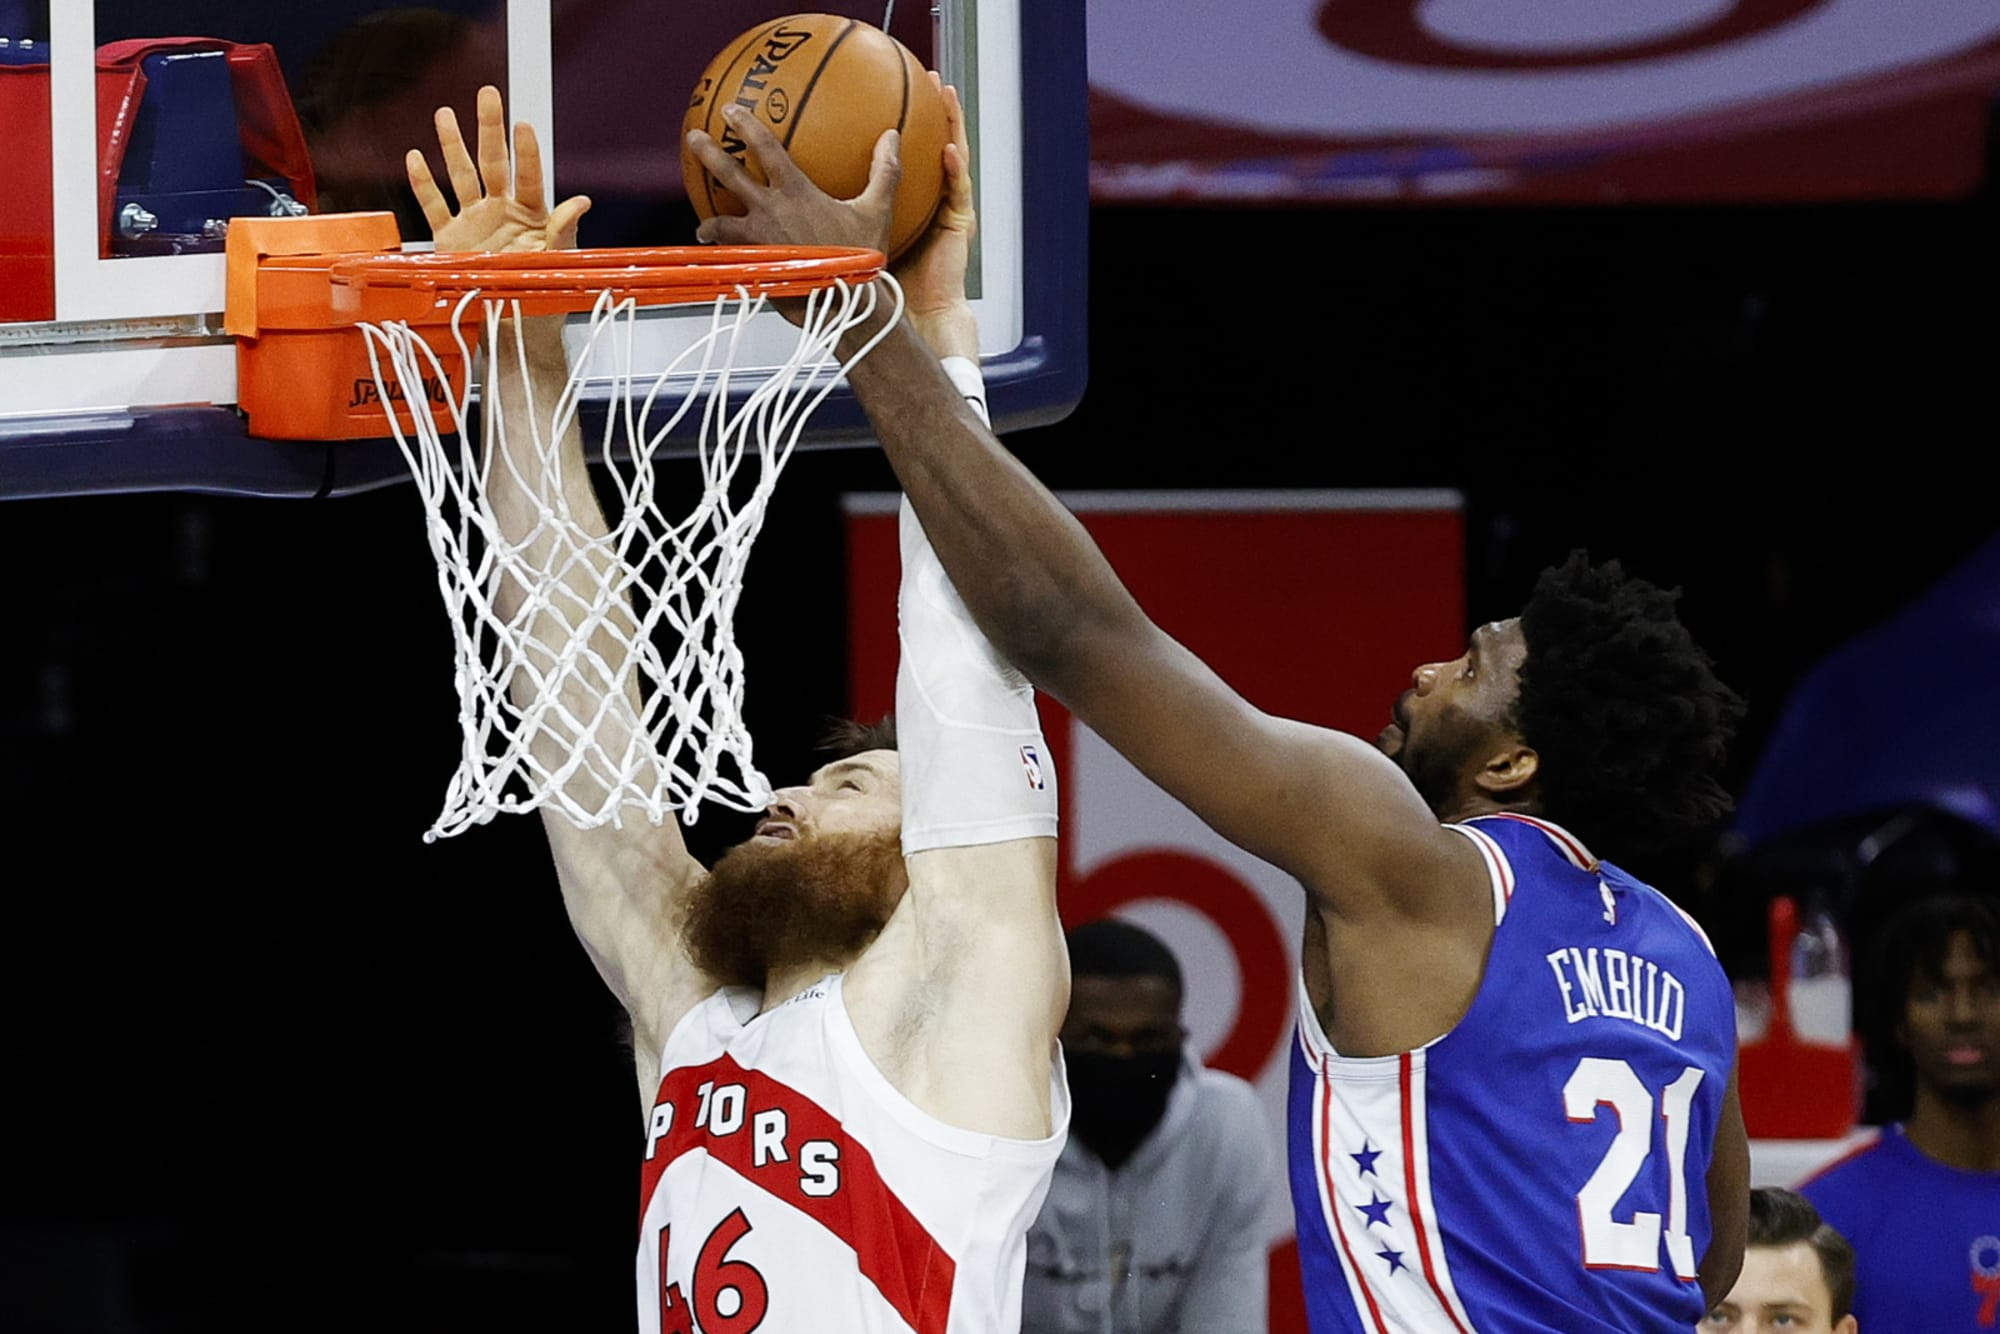 Raptors: The 76ers will be Toronto's toughest matchup by far